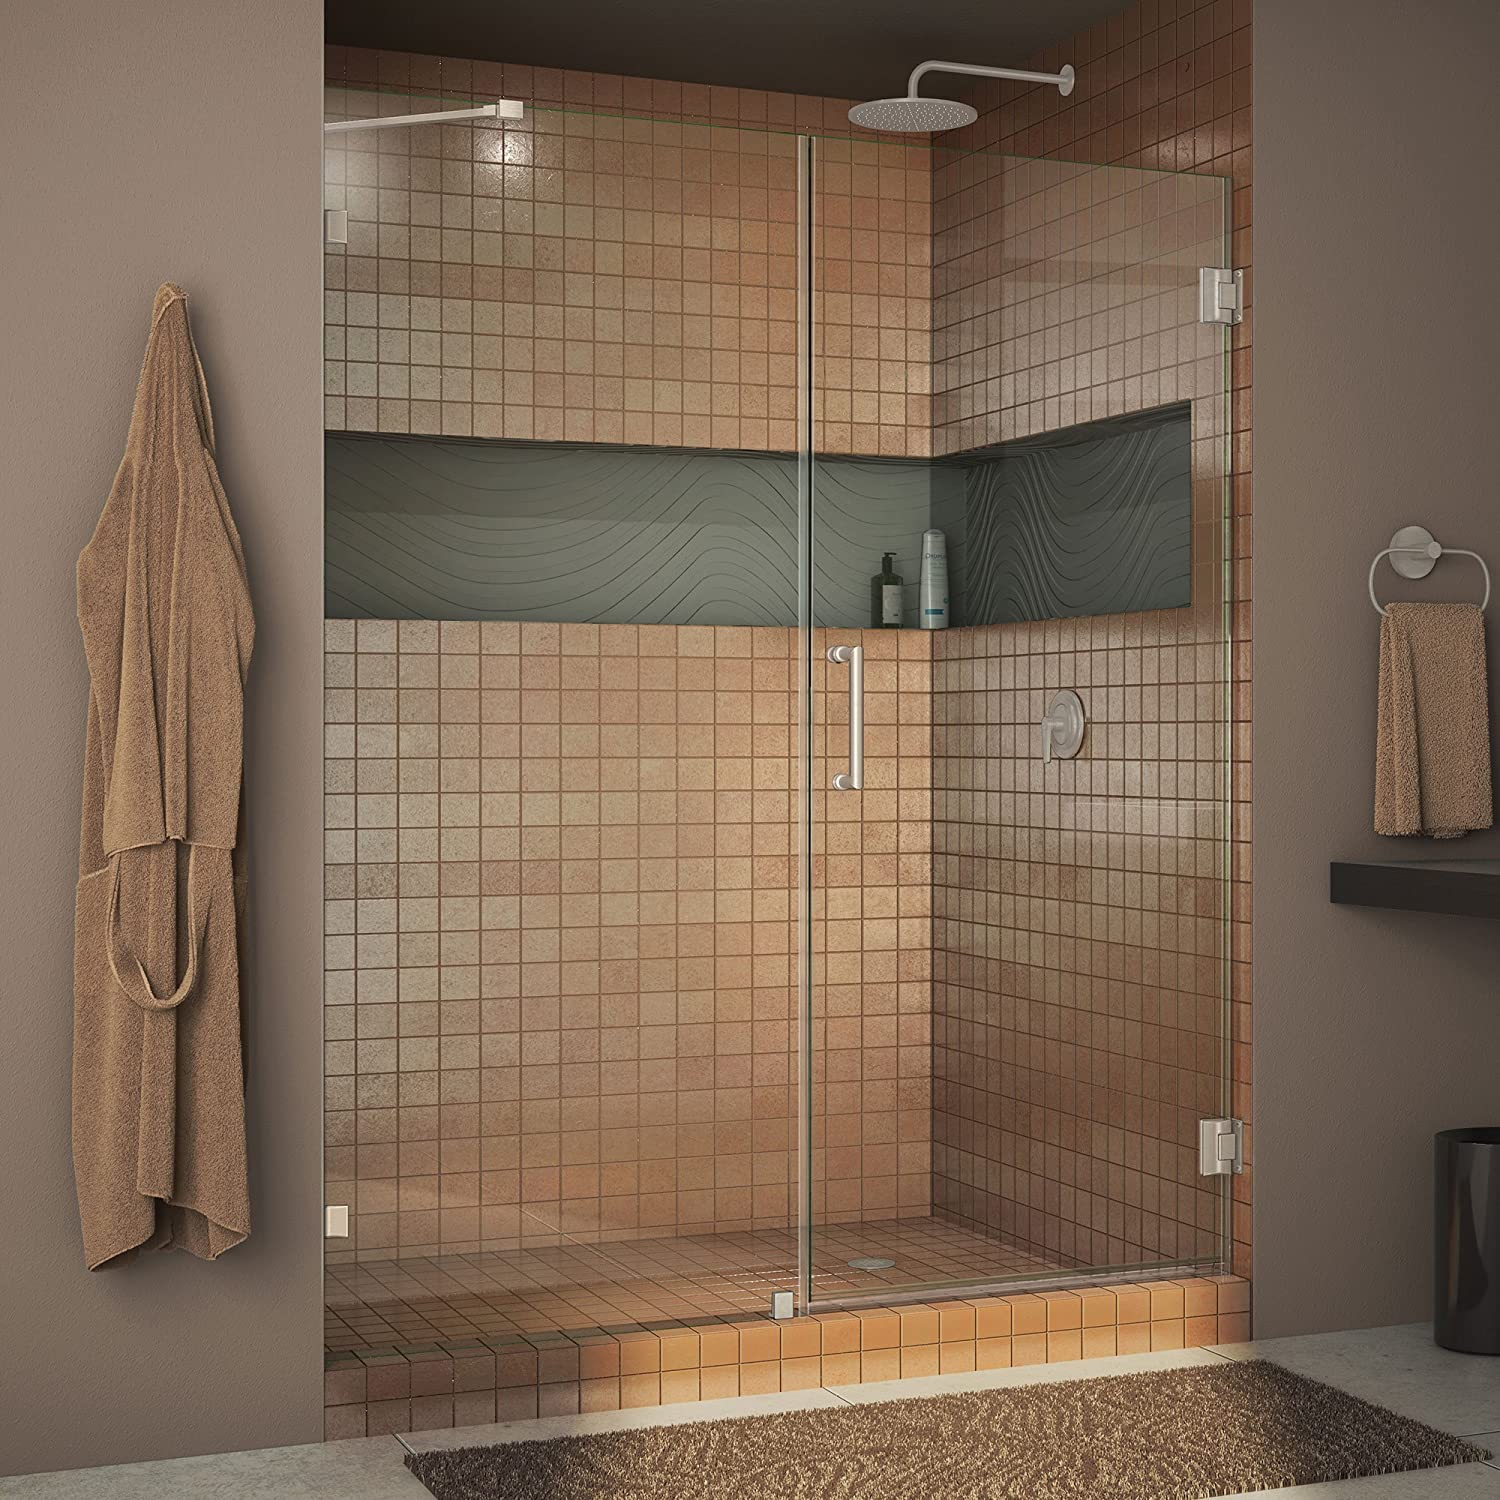 DreamLine Unidoor Lux 60 in. W x 72 in. H Fully Frameless Hinged Shower Door with Support Arm in Brushed Nickel, SHDR-23607210-04